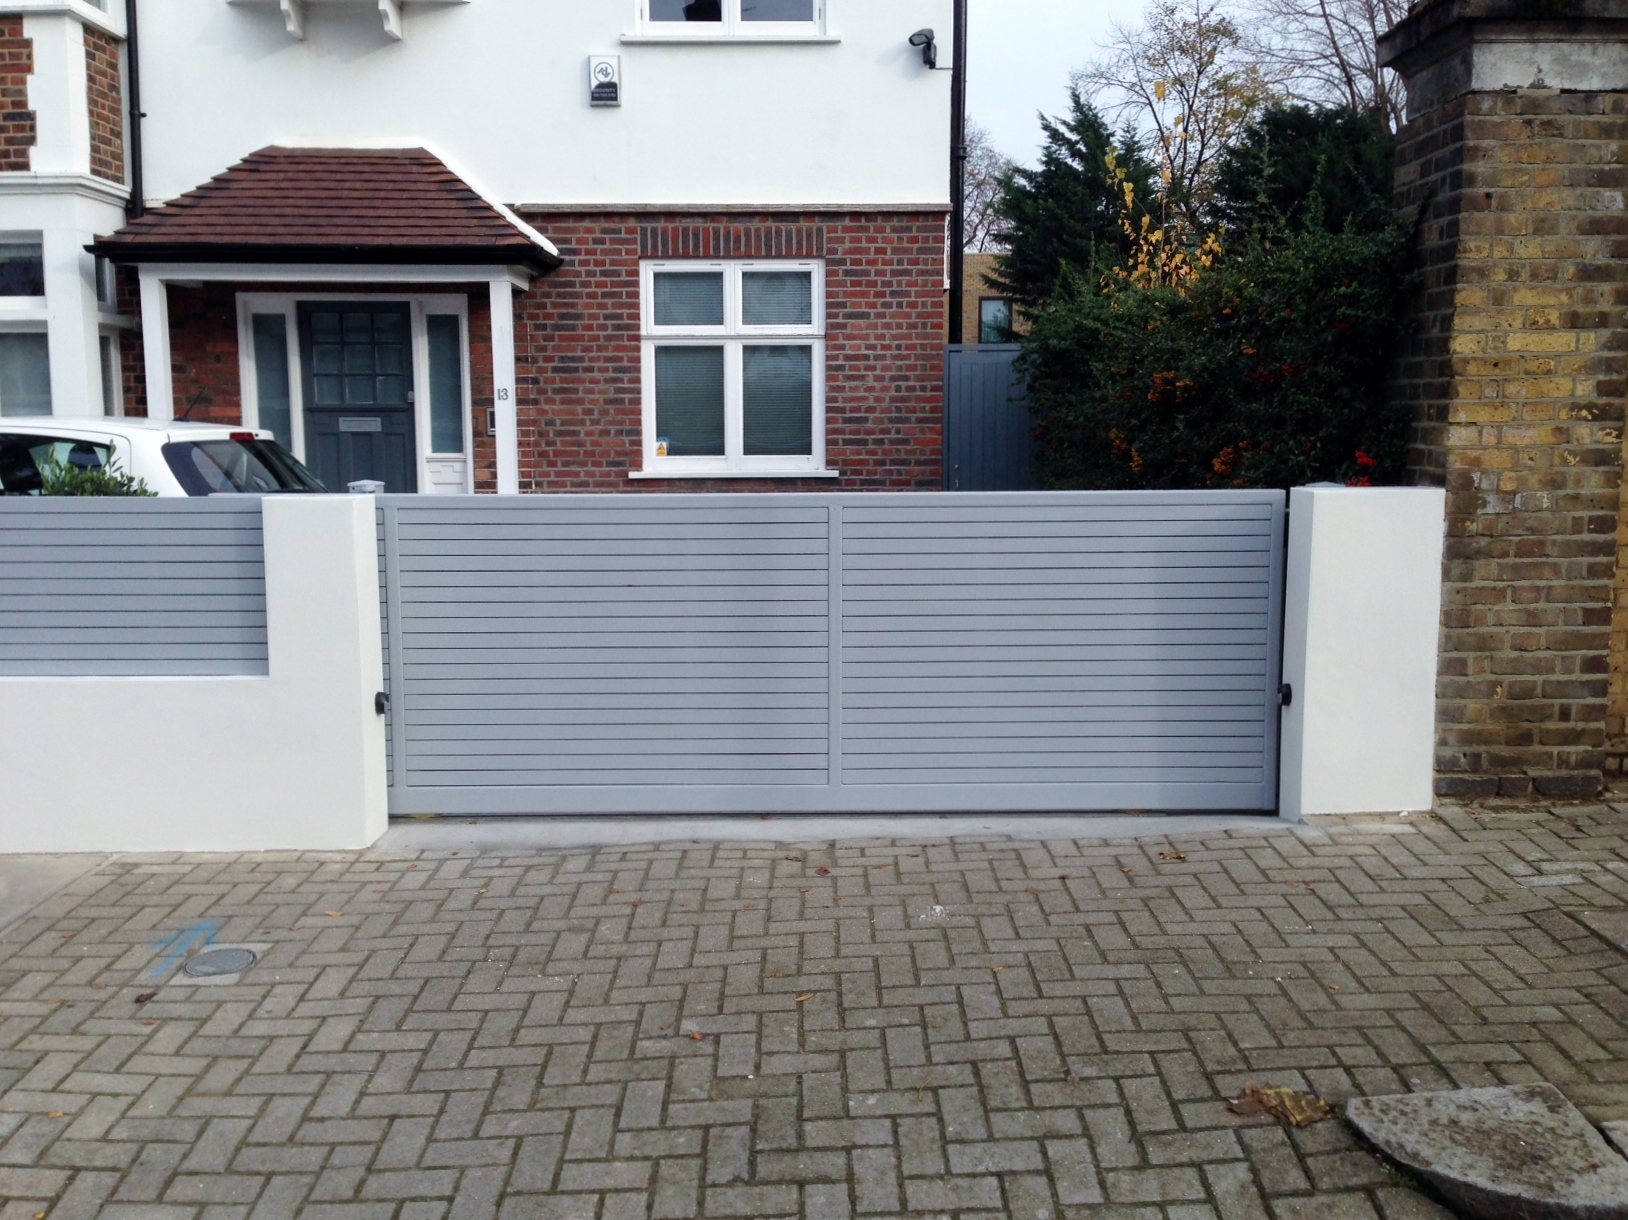 Park Boundary Wall Design : Boundary wall gate design ? search results landscaping